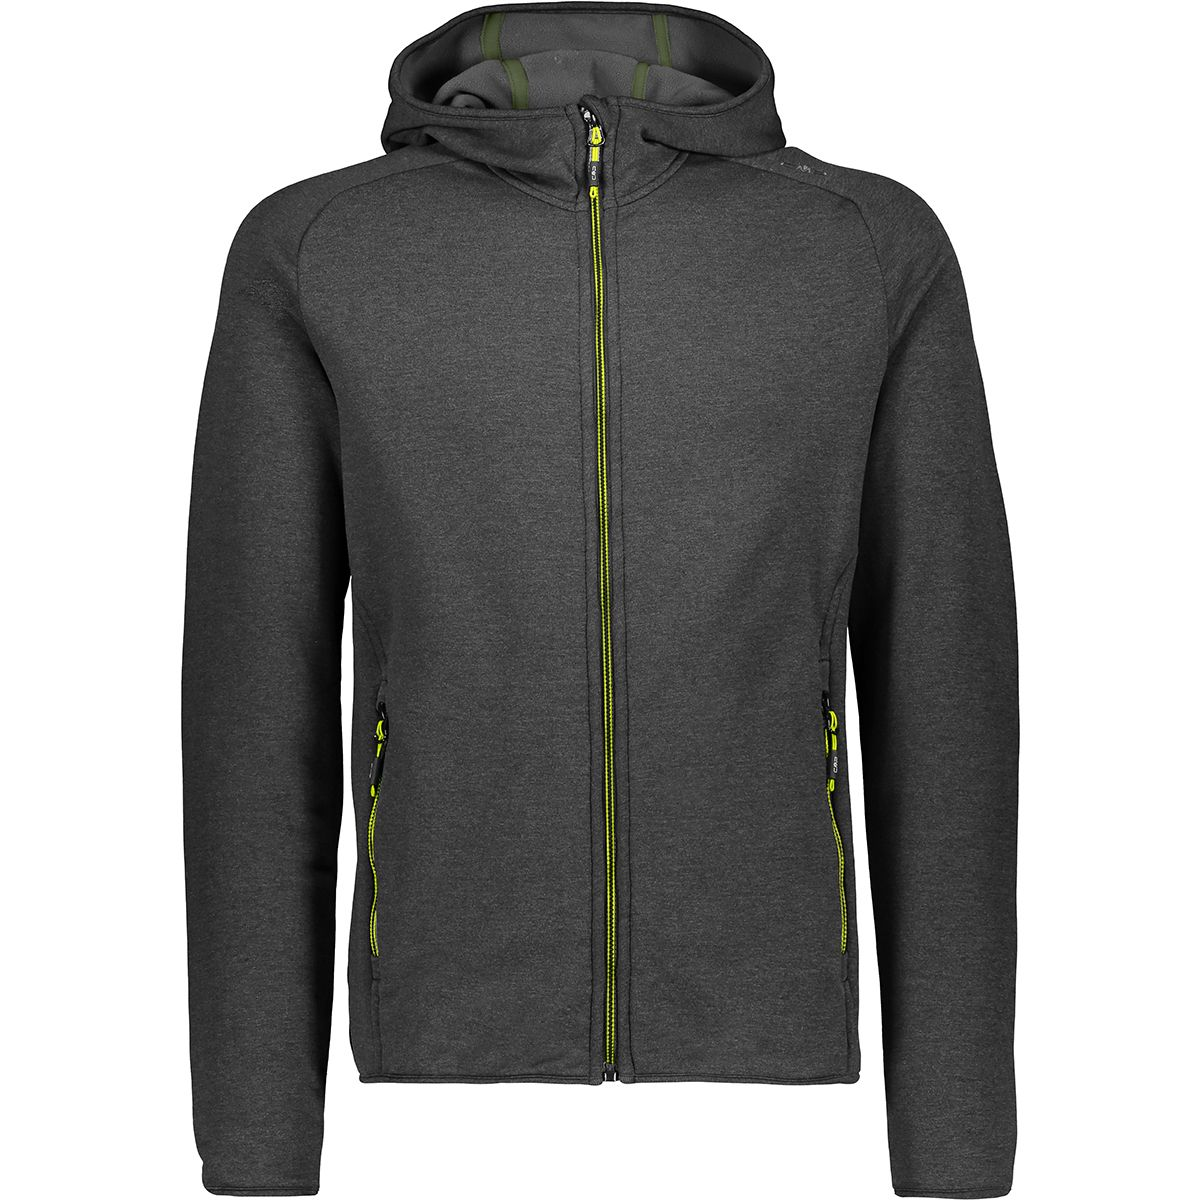 Herren Stretch Fleece Jacke Grün L